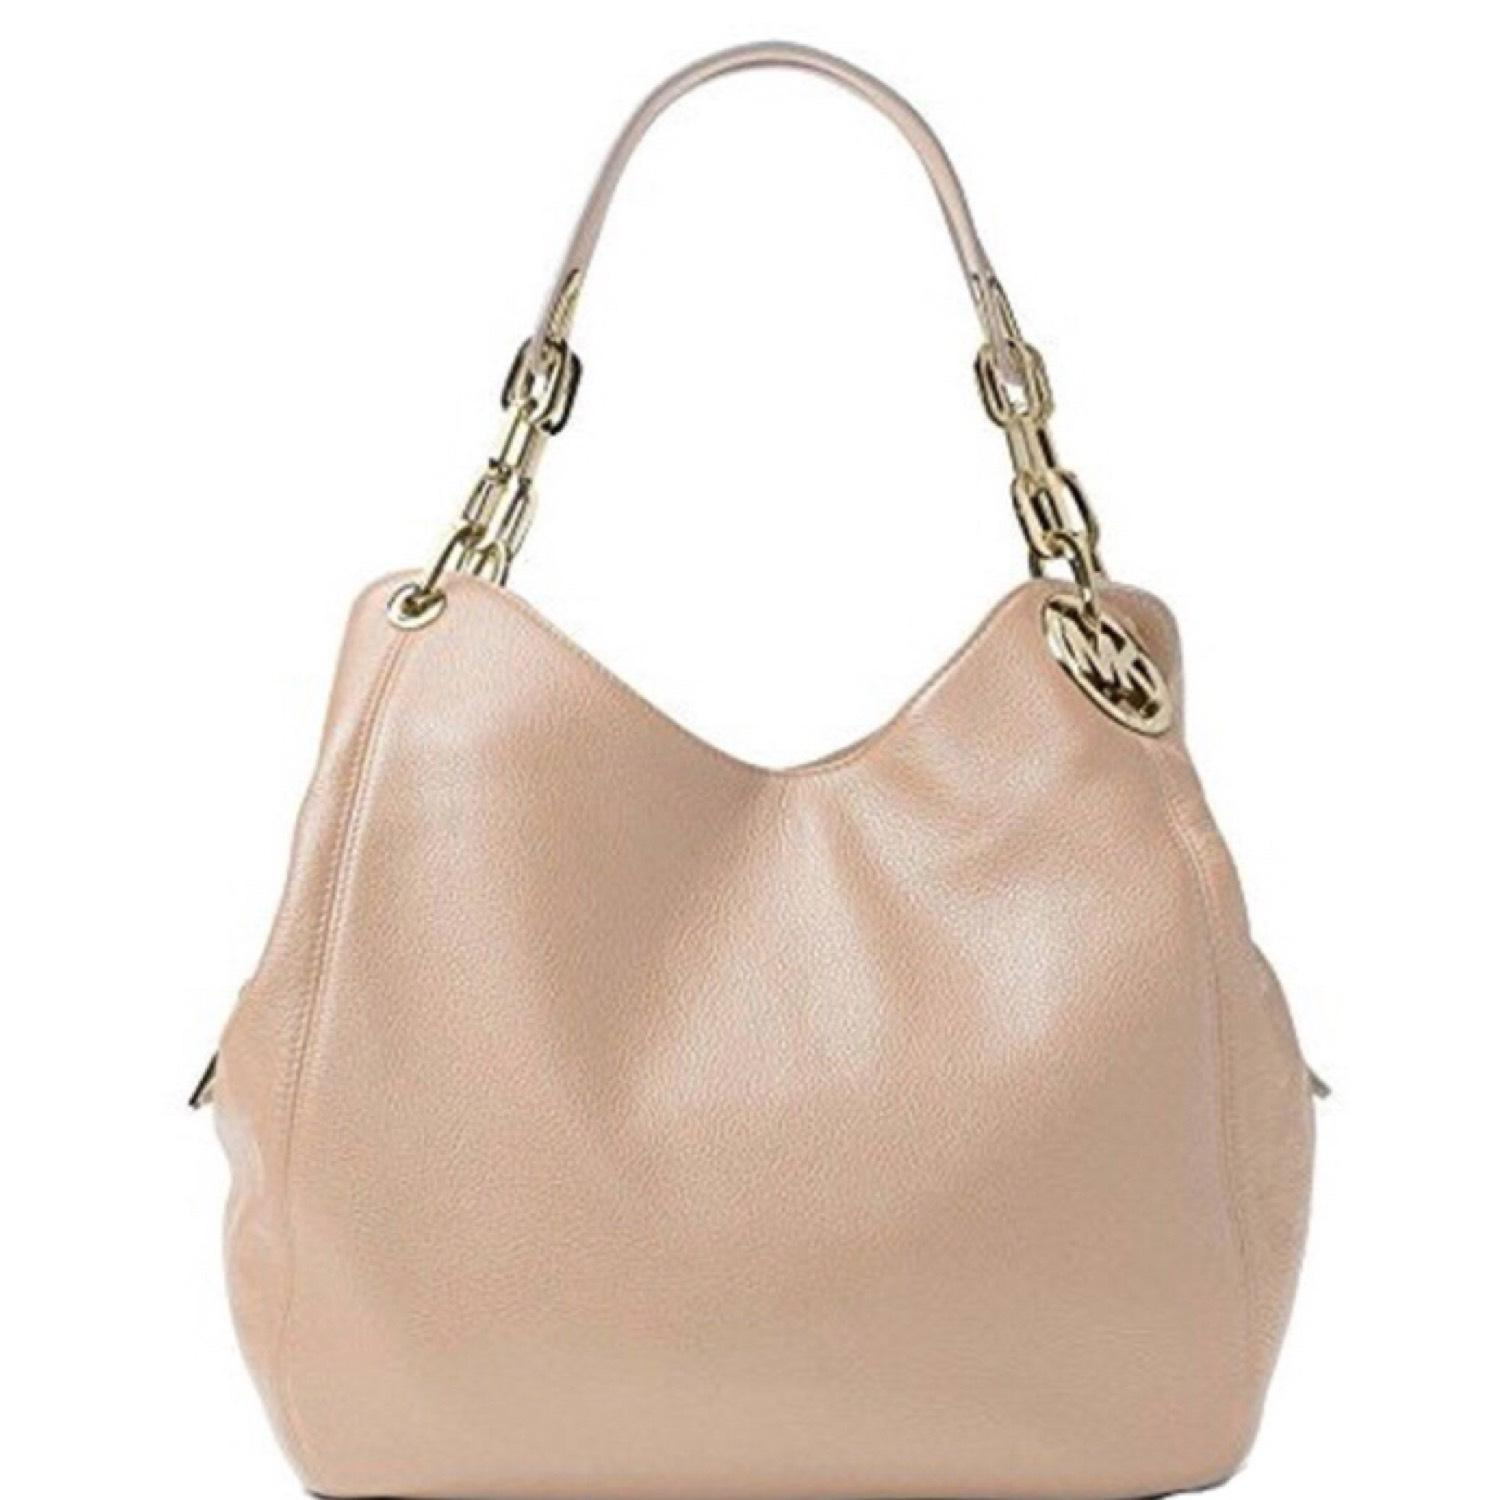 d5e69f9464e4 ... where can i buy michael kors satchel in oyster 06a7e dae4f